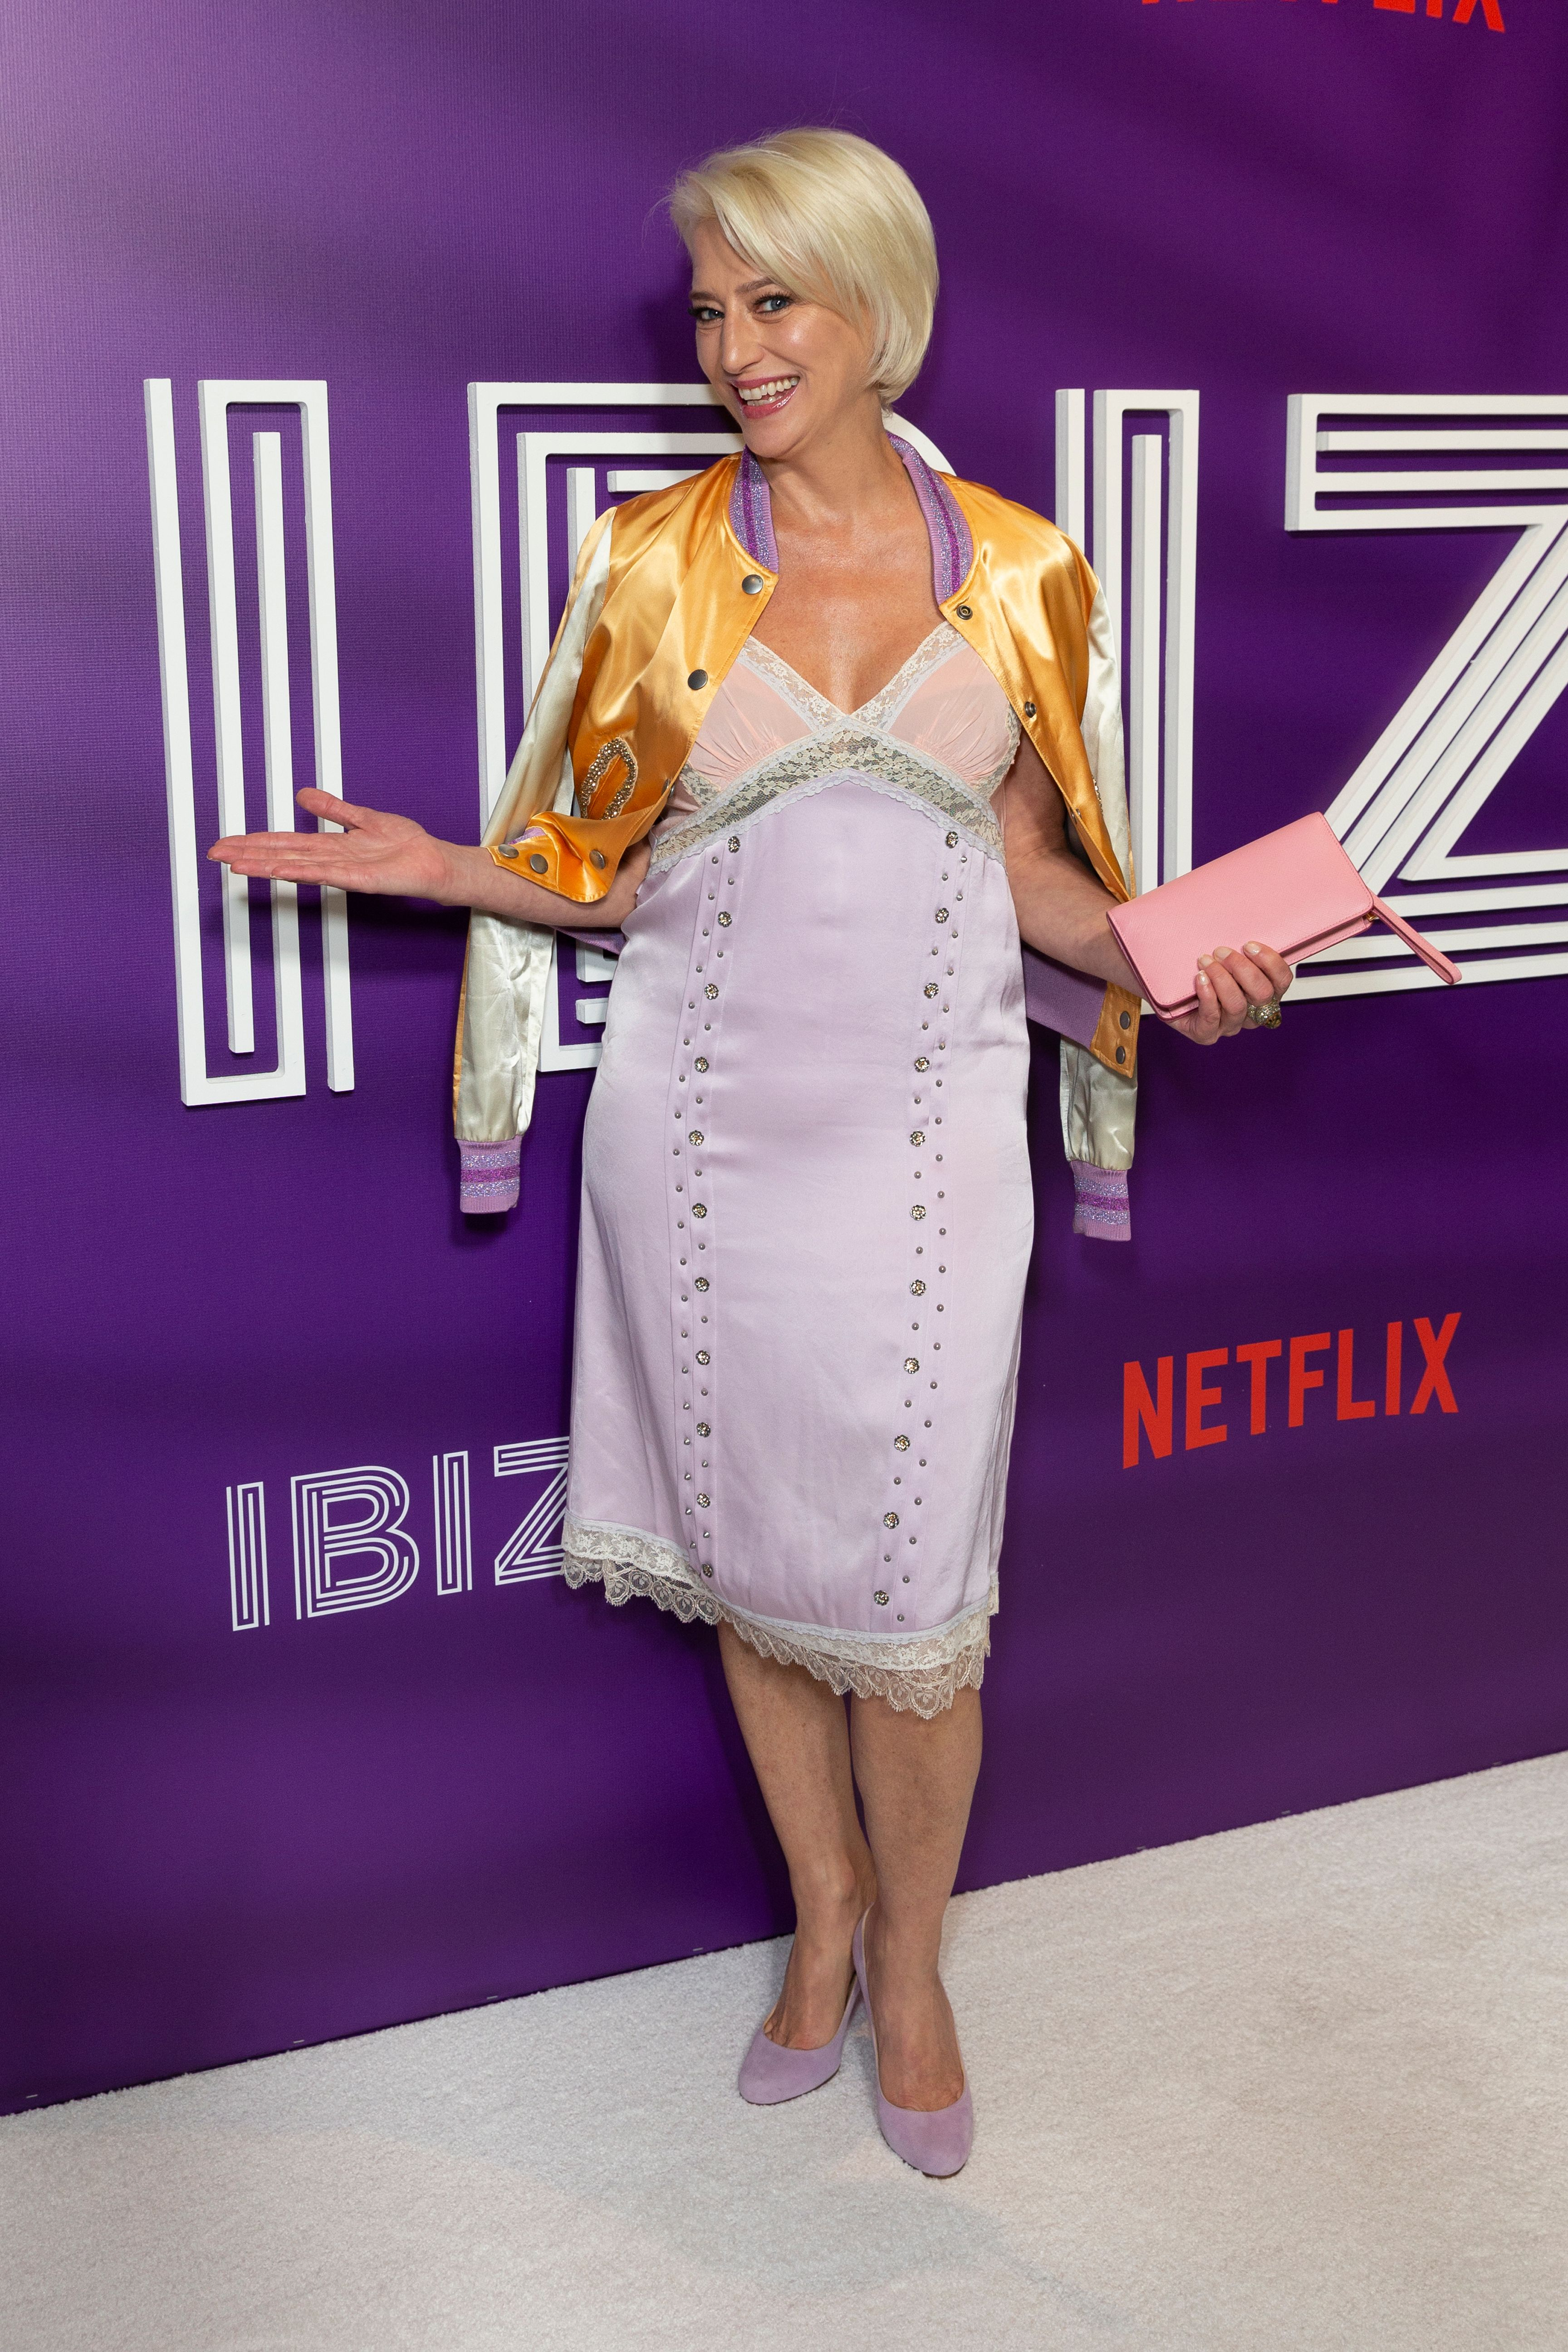 """Dorinda Medley at the screening of Netflix film """"Ibiza"""" in New York City in 2018 